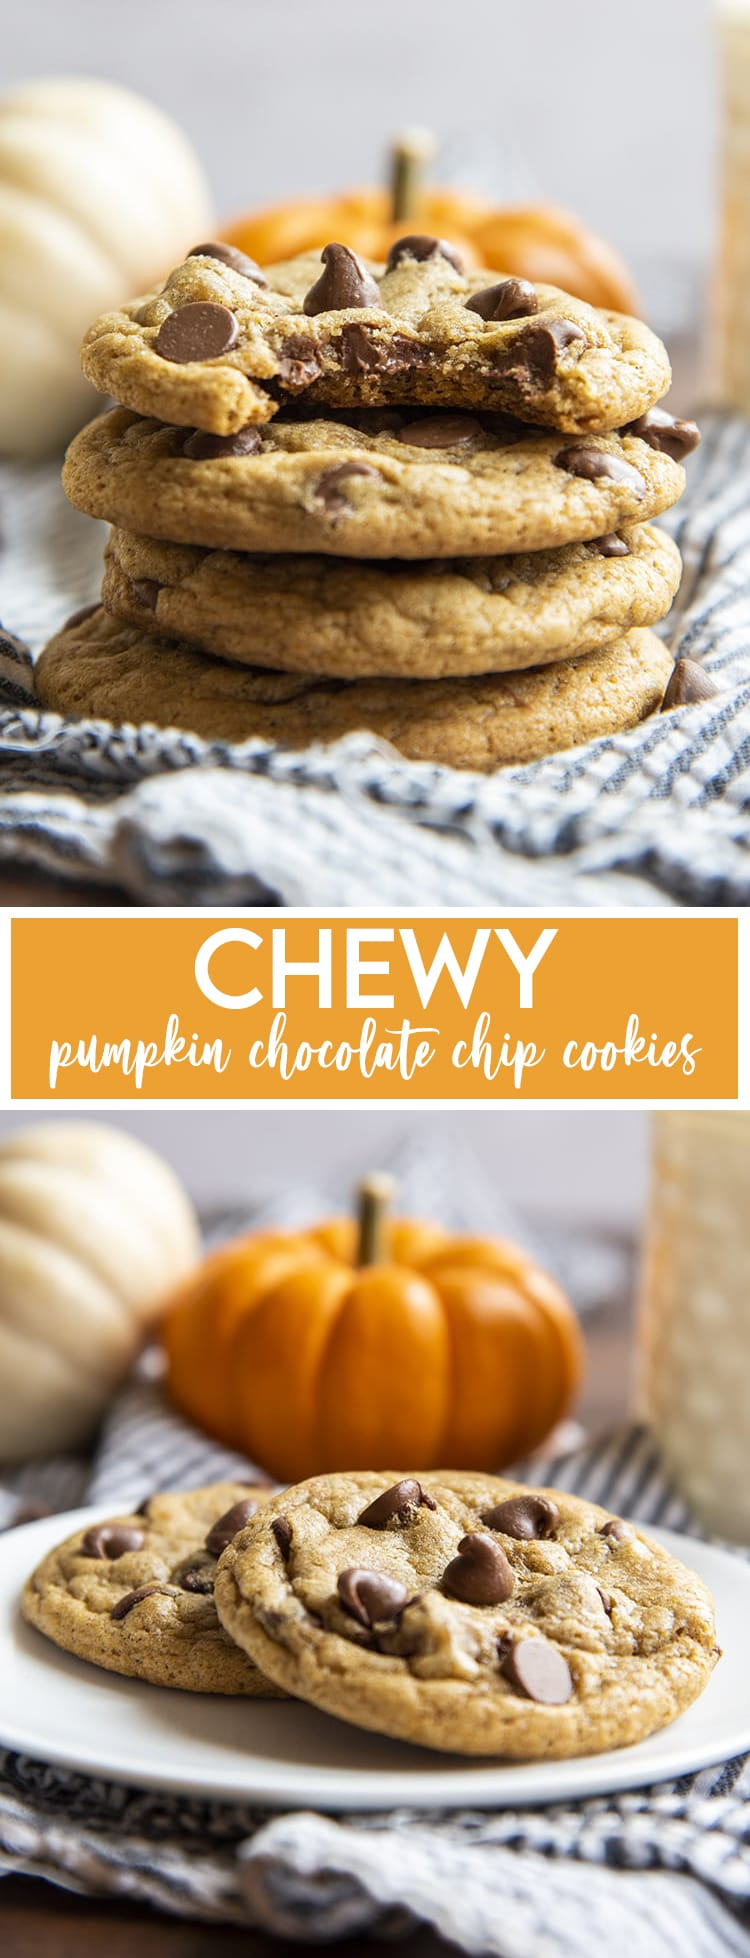 A stack of four pumpkin chocolate chip cookies. The top has a bite taken out of it. Then the text Chewy Pumpkin Chocolate Chip Cookies. Then two of the cookies on a white plate with a small pumpkin behind them.